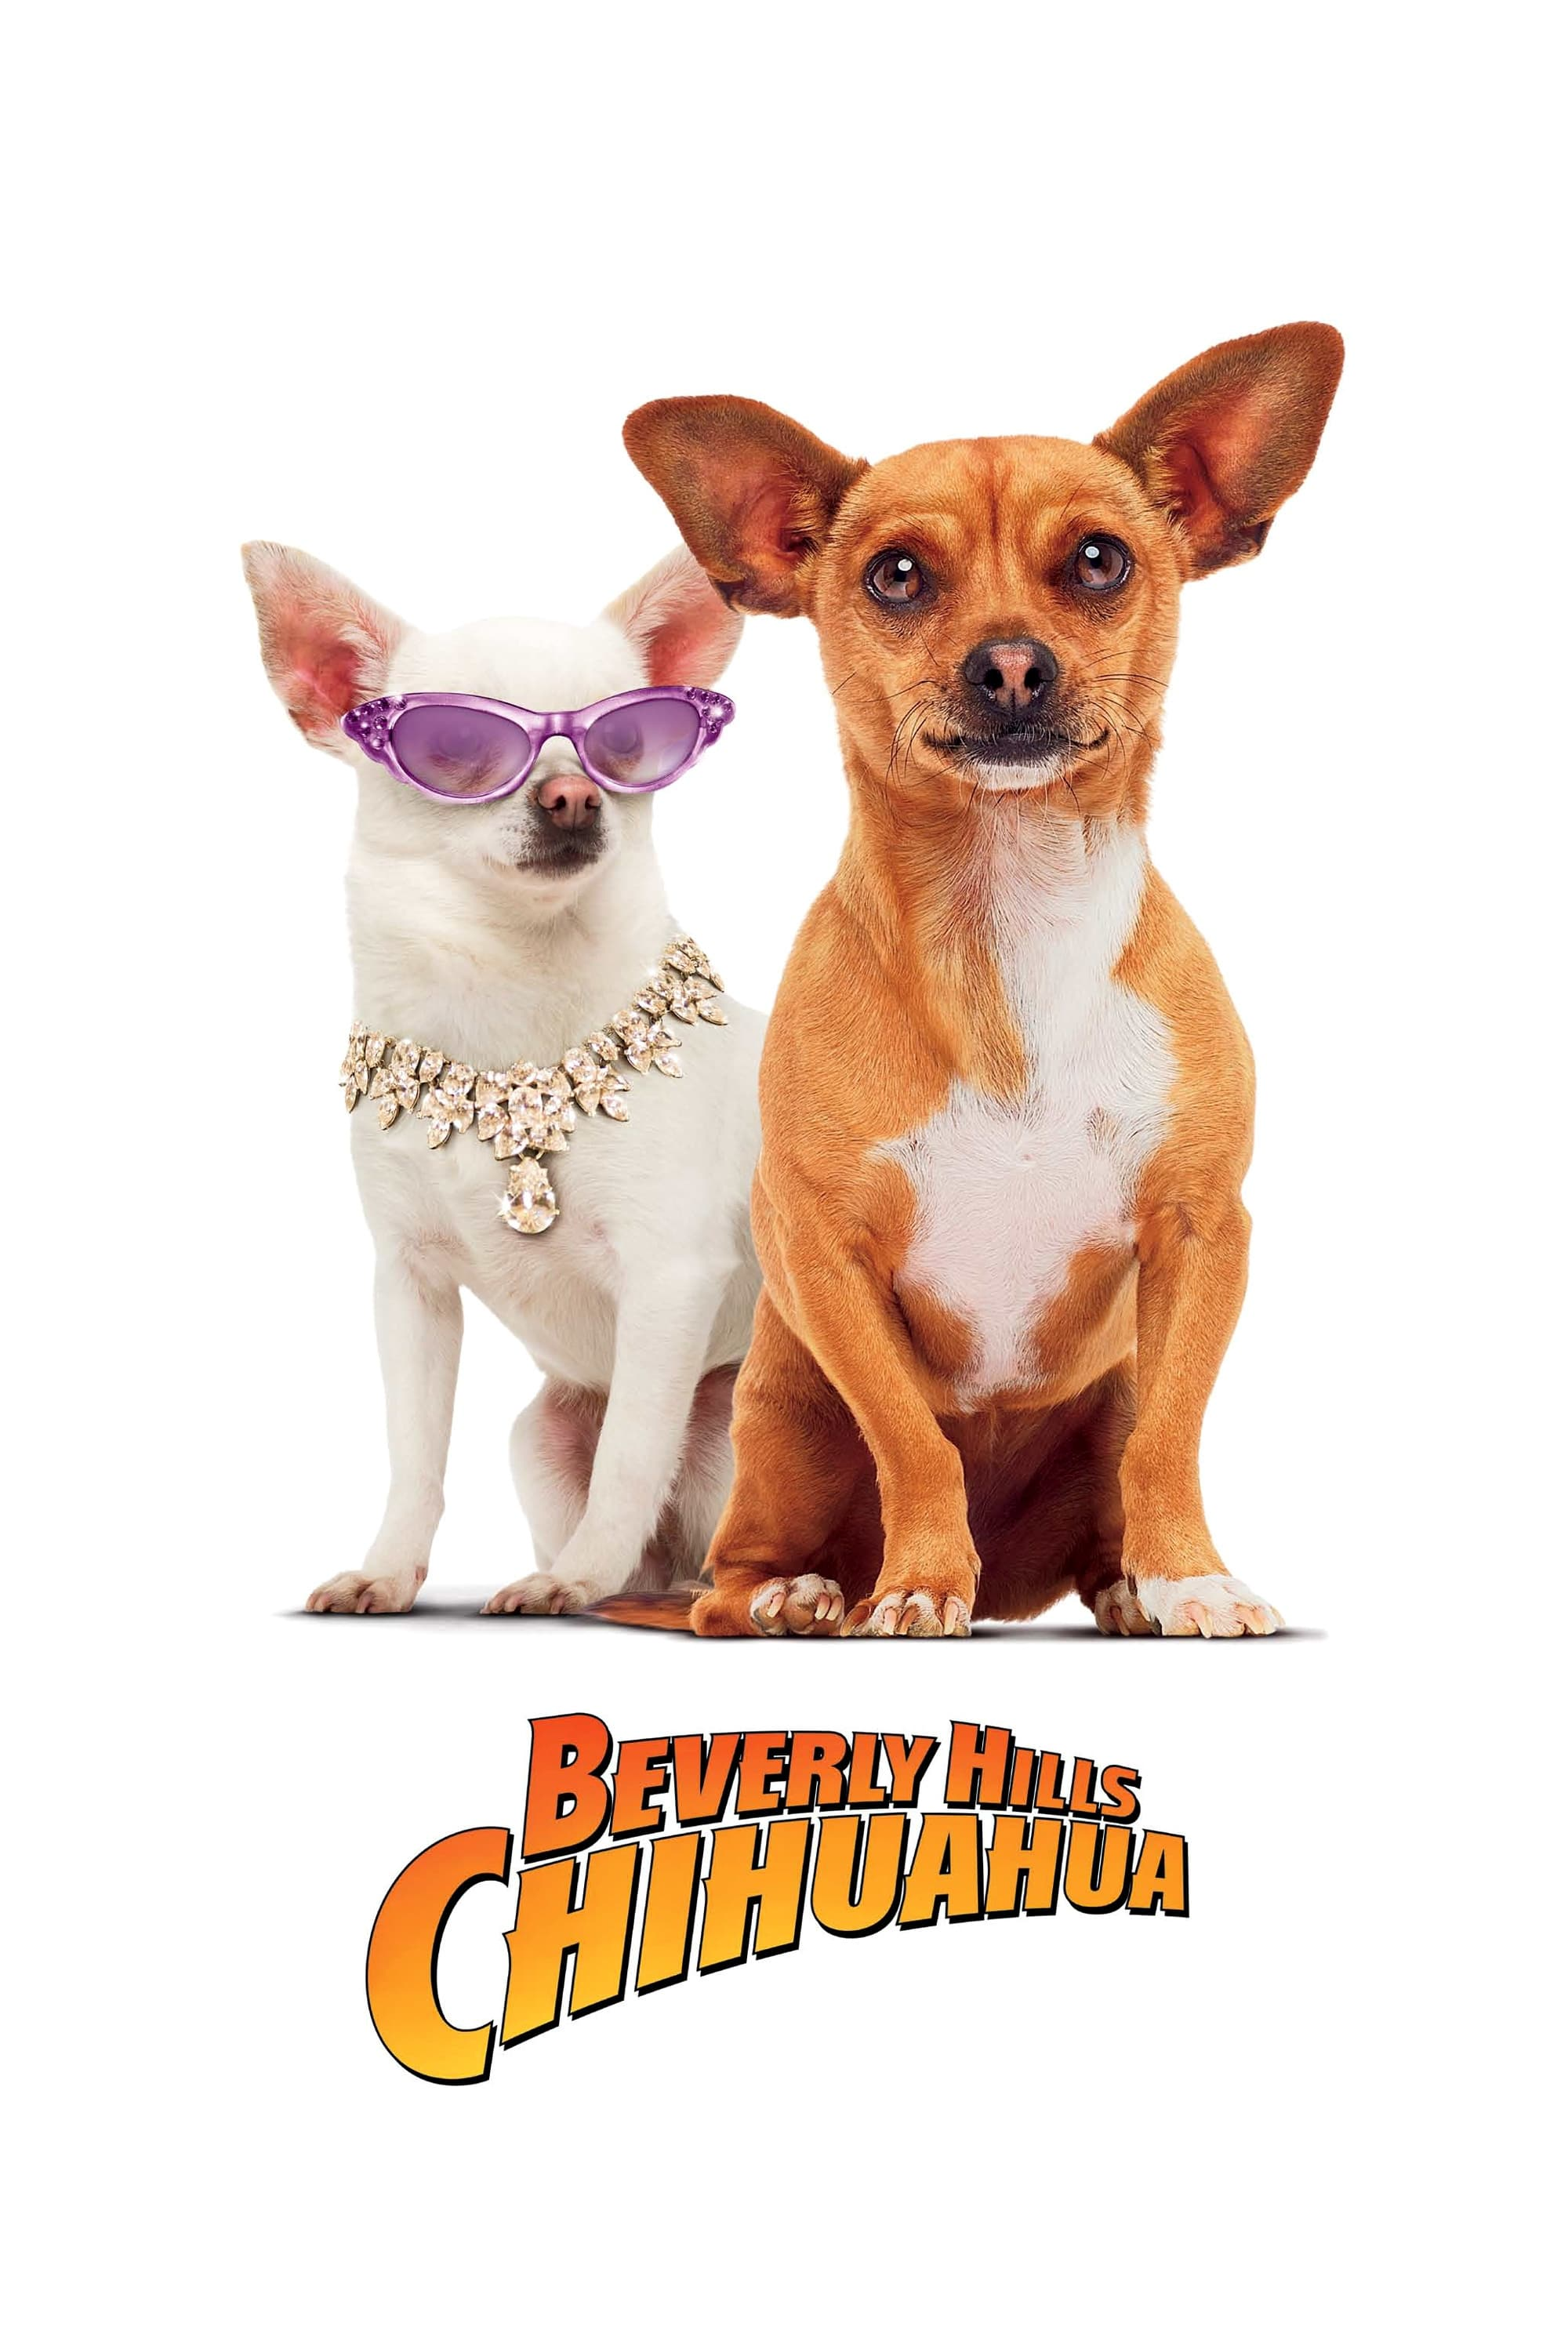 beverly chihuahua beverly hills chihuahua 2008 posters the movie 9863